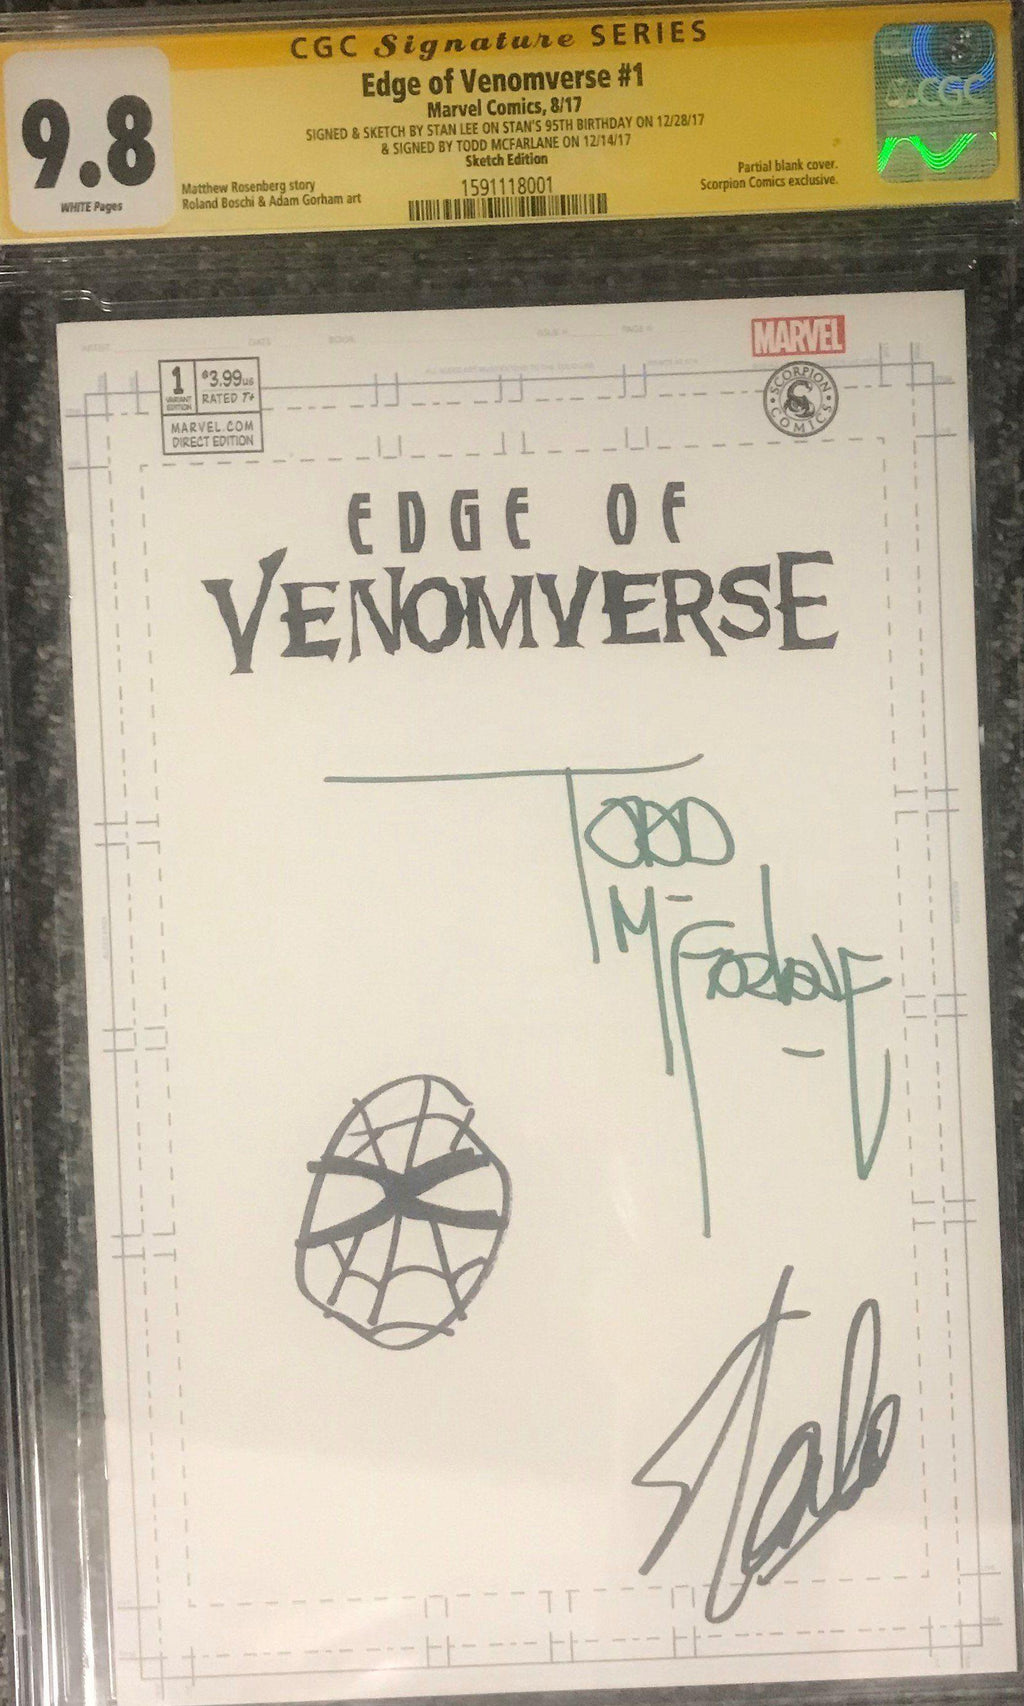 EDGE OF VENOMVERSE #1 MARVEL COMICS CGC GRADED: SIGNED AND SKETCHED BY STAN LEE CGC Graded Marvel Comic MARVEL FINE ART